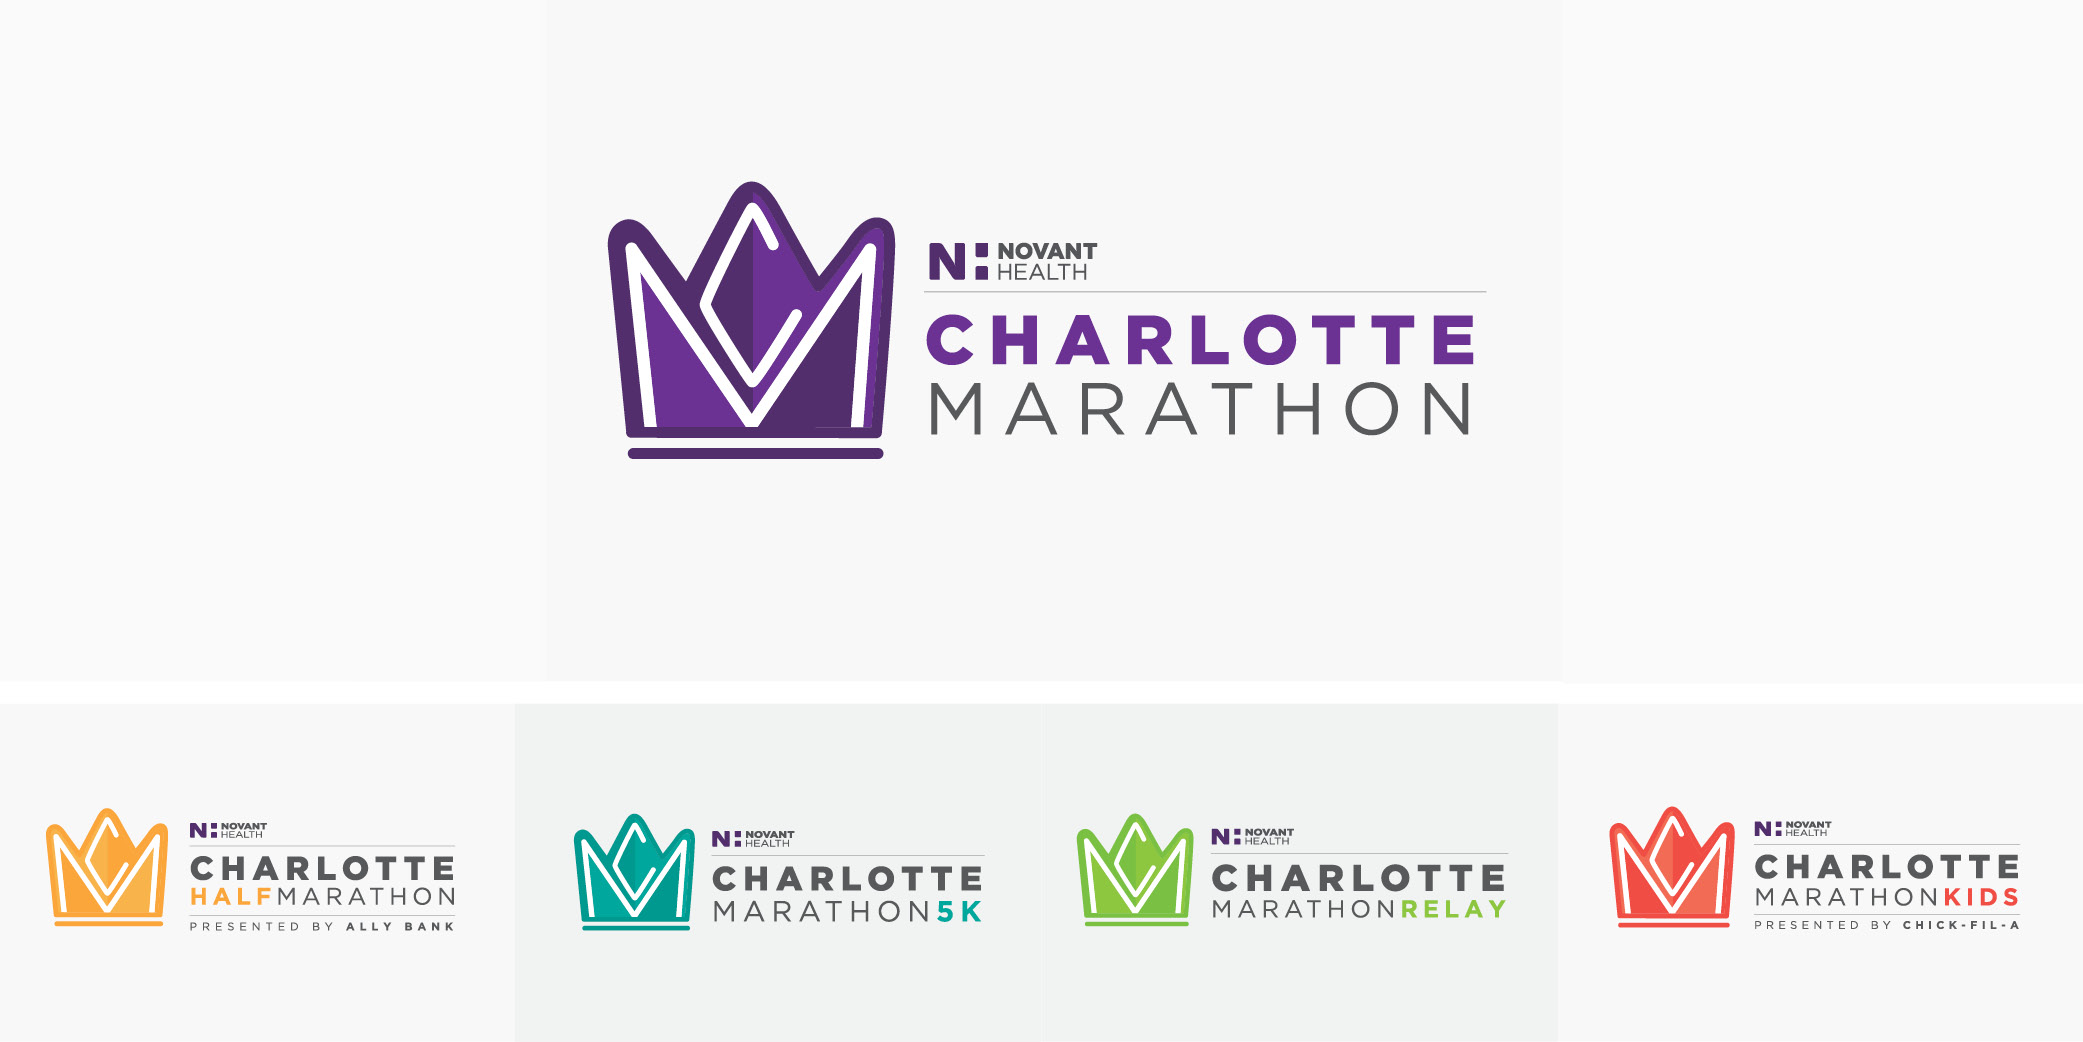 The Charlotte Marathon logos use bright and energetic colors to convey excitement and positivity.